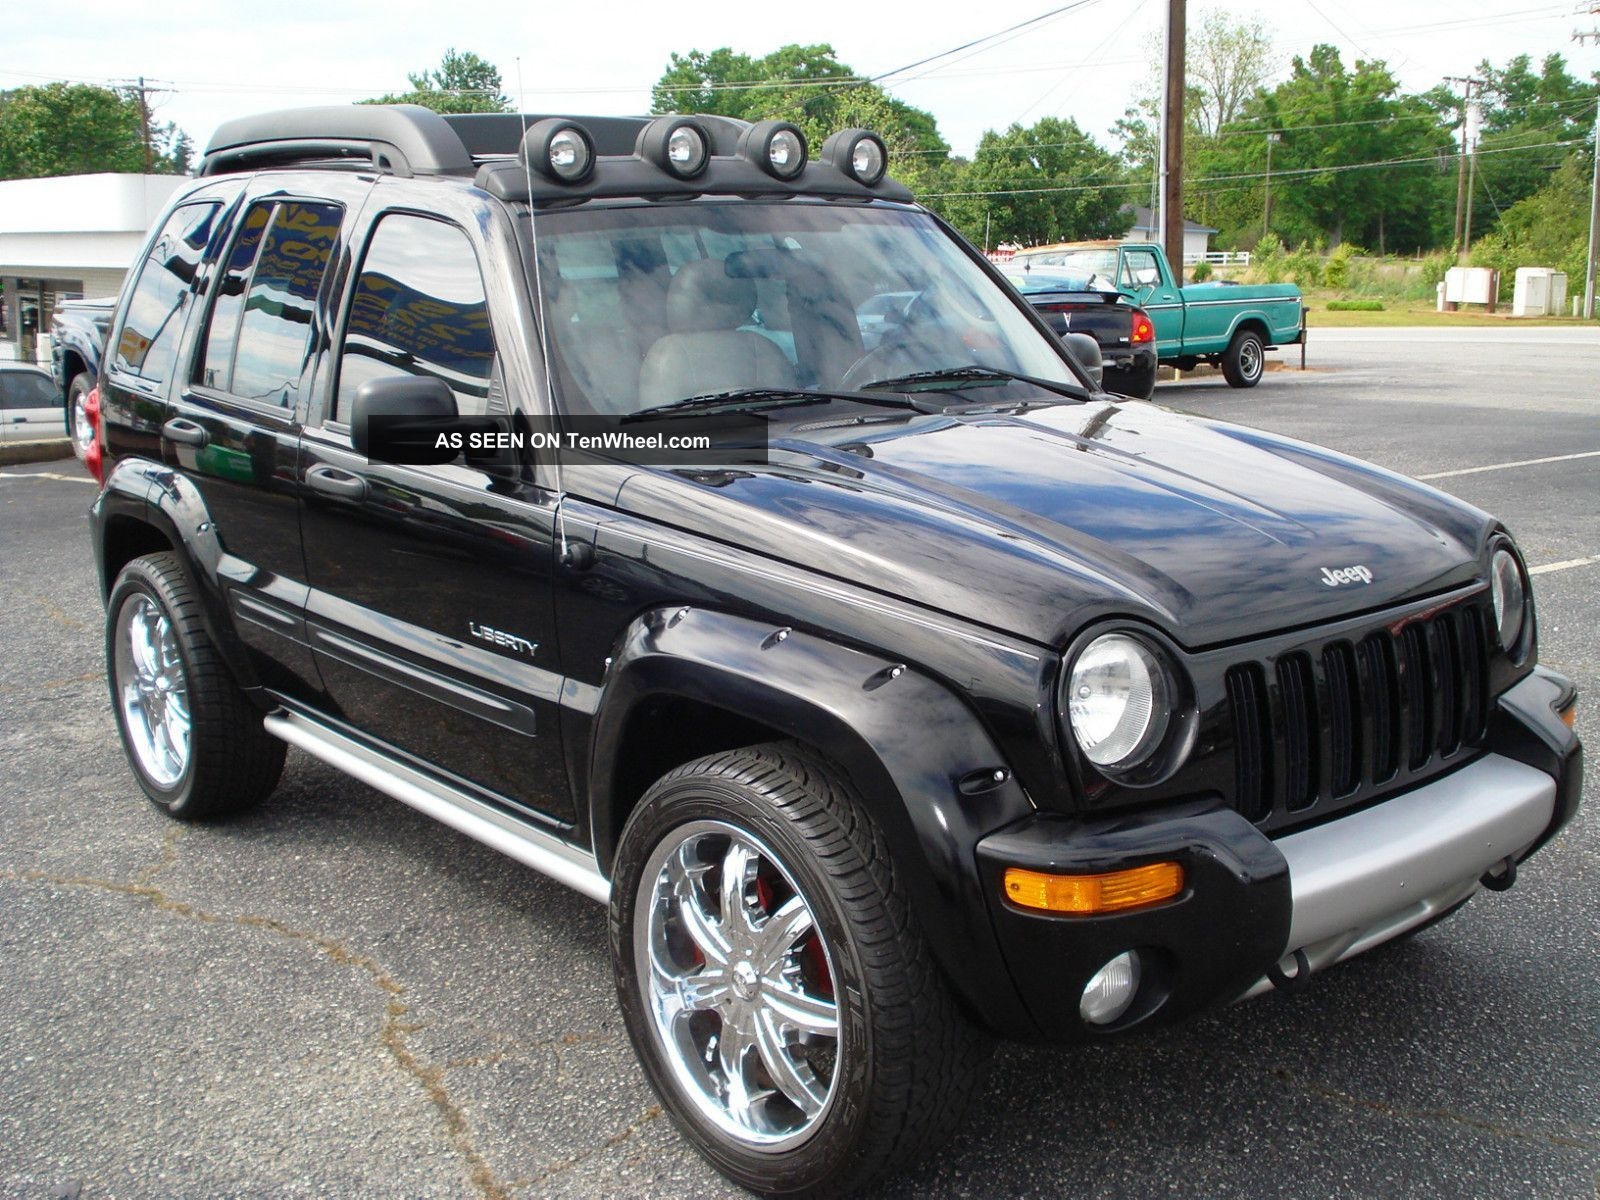 This looks just like our 04 jeep liberty except for the wheels